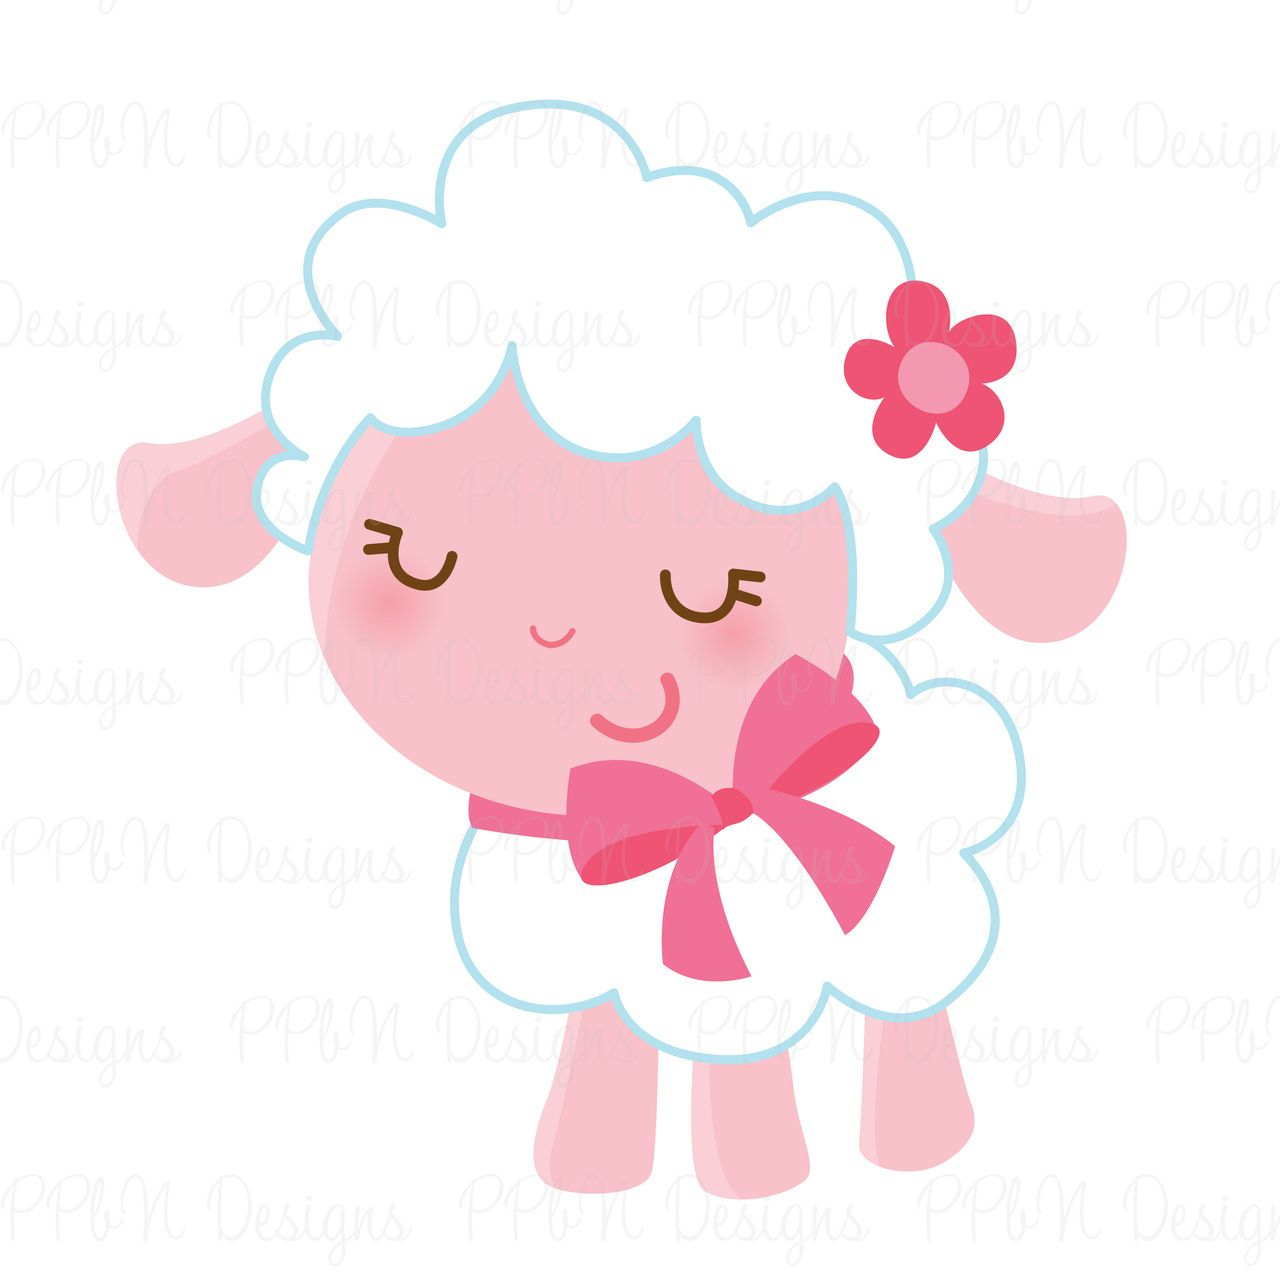 Cute Sheep Drawing Tumblr Ppbn Designs Zenware Designs Little Lamb 00 Http